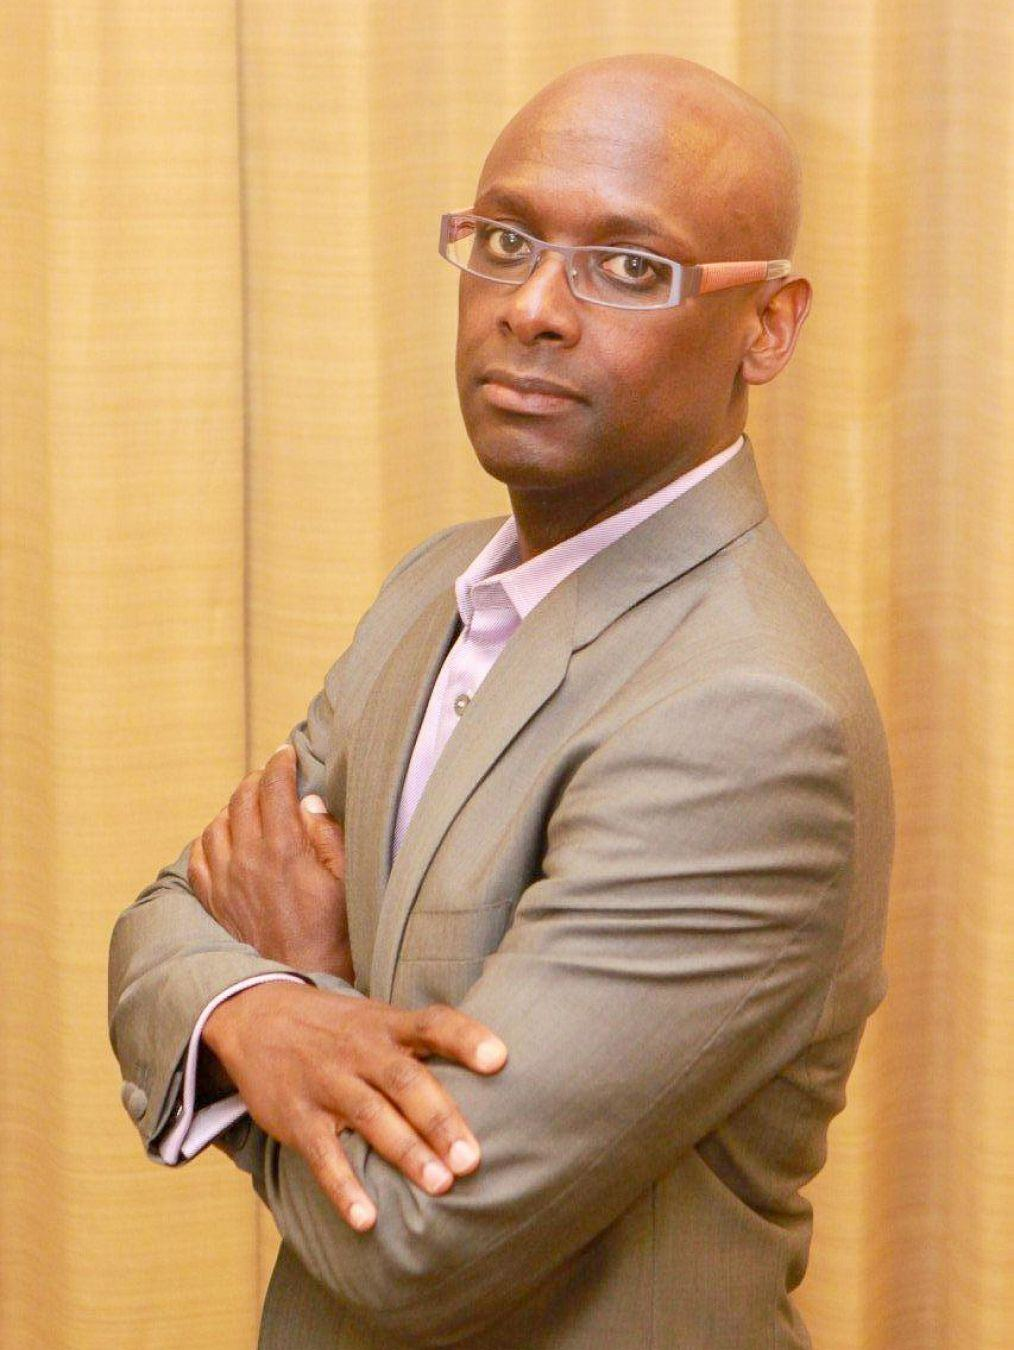 Dion Tucker - Director of IT Operations